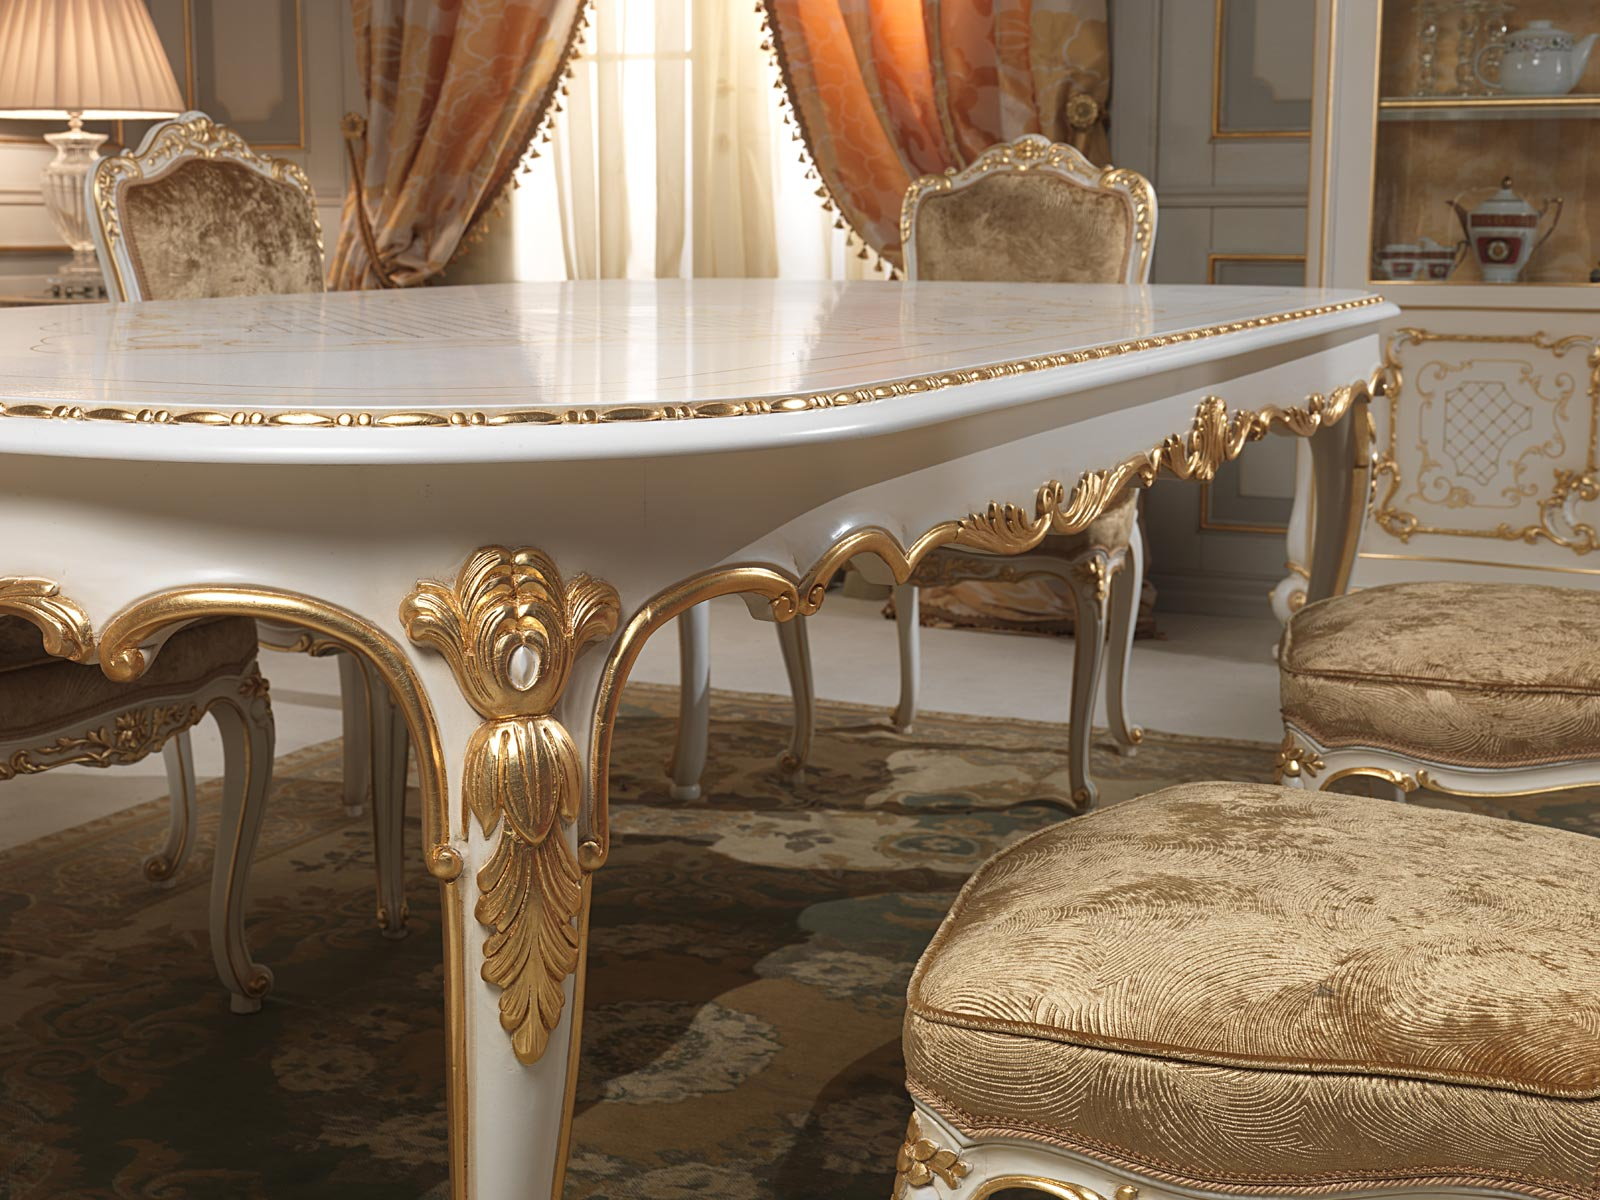 Dining table in louis xv style particular of the carvings vimercati classic furniture - Table louis xv ...